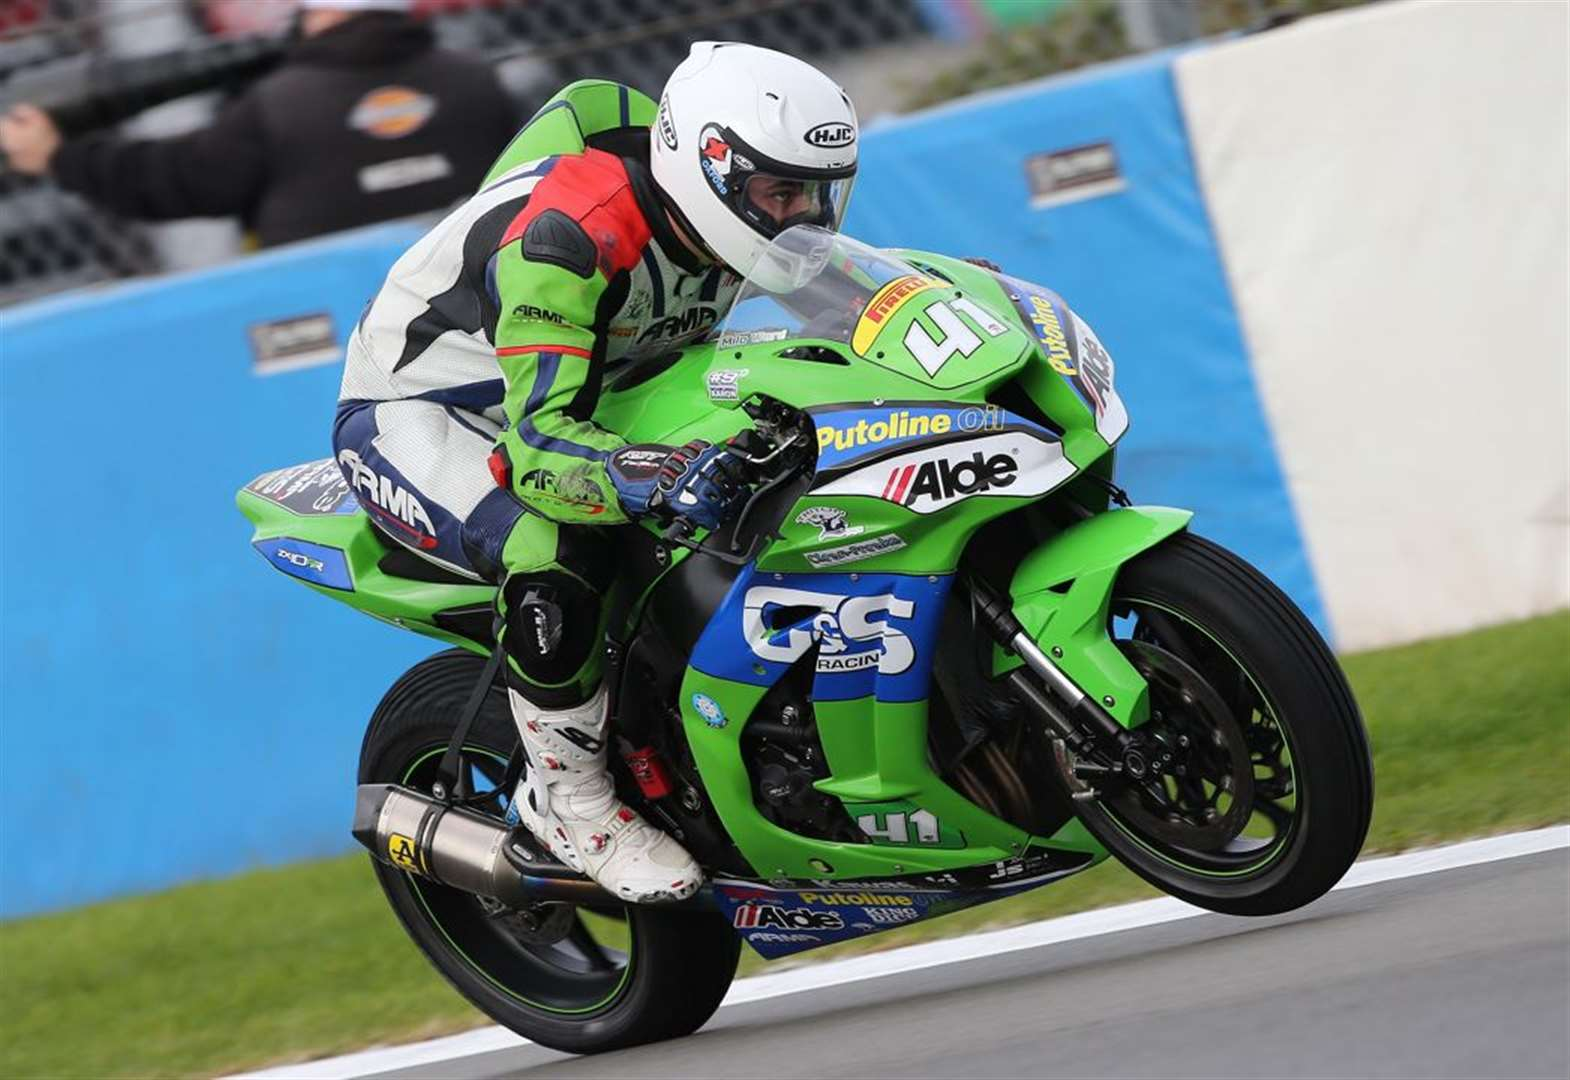 MOTORCYCLING: Milo rewarded for efforts